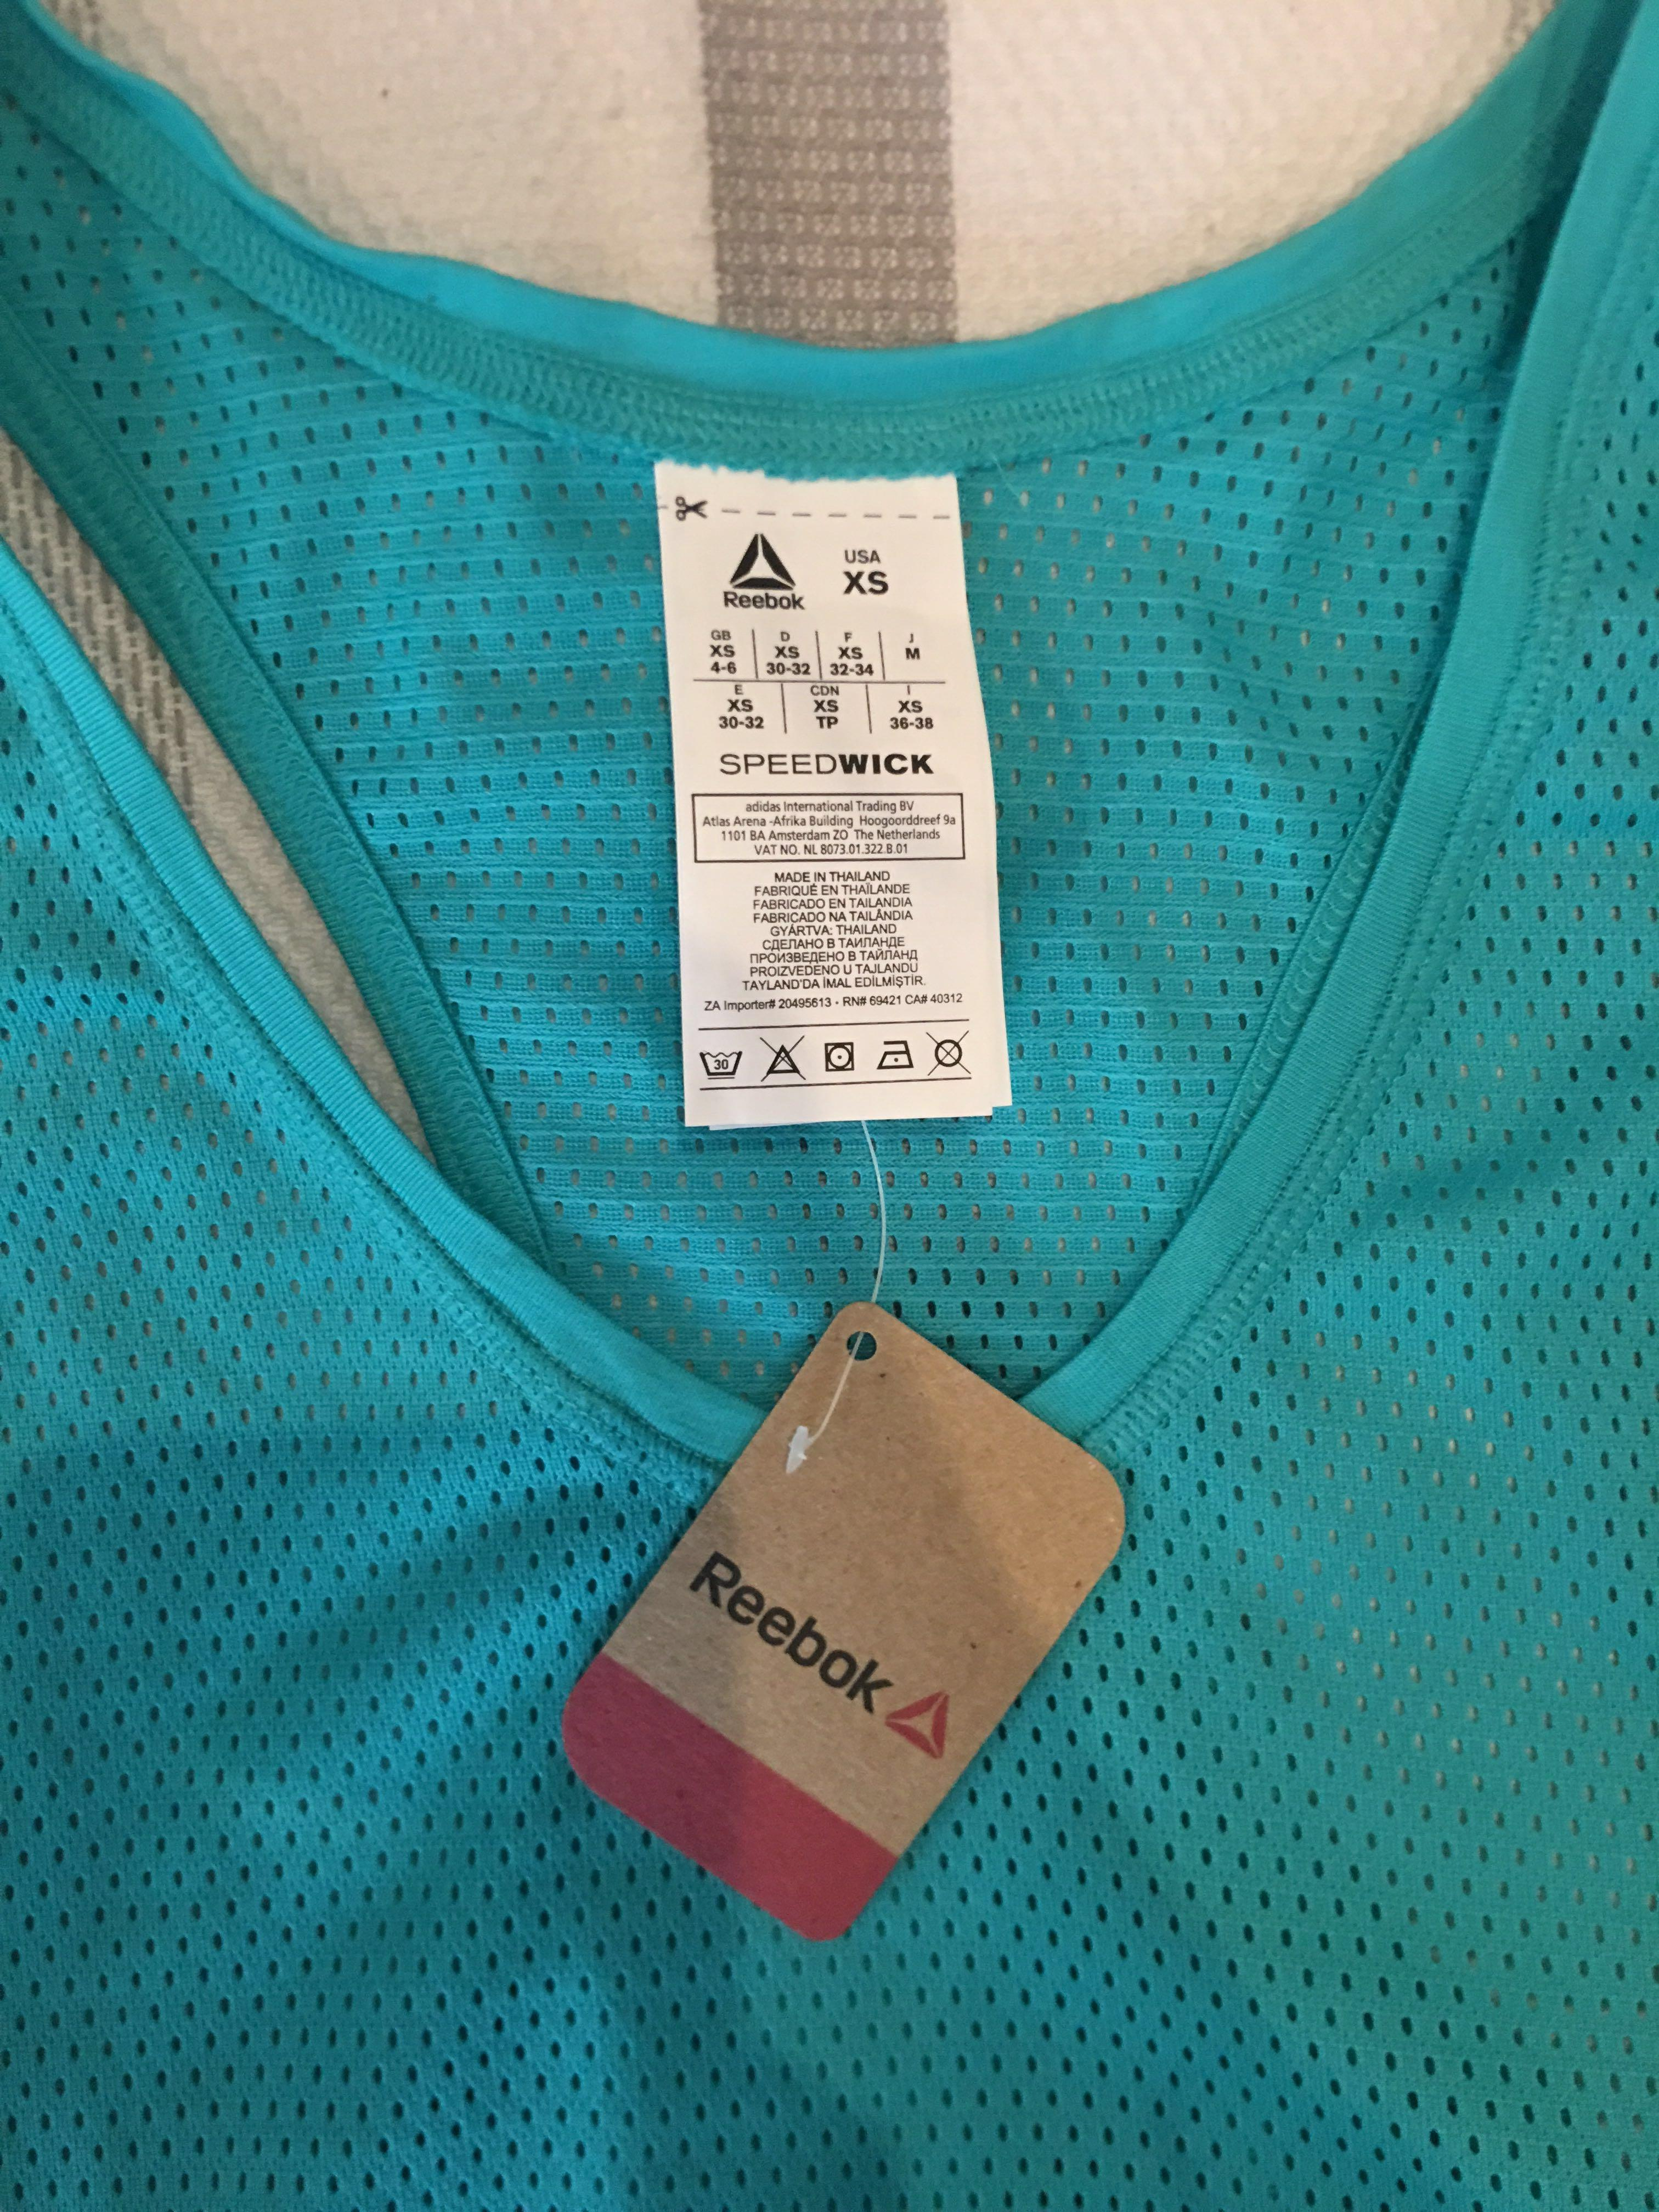 REEBOK crossfit gym leggings and singlet complete outfit